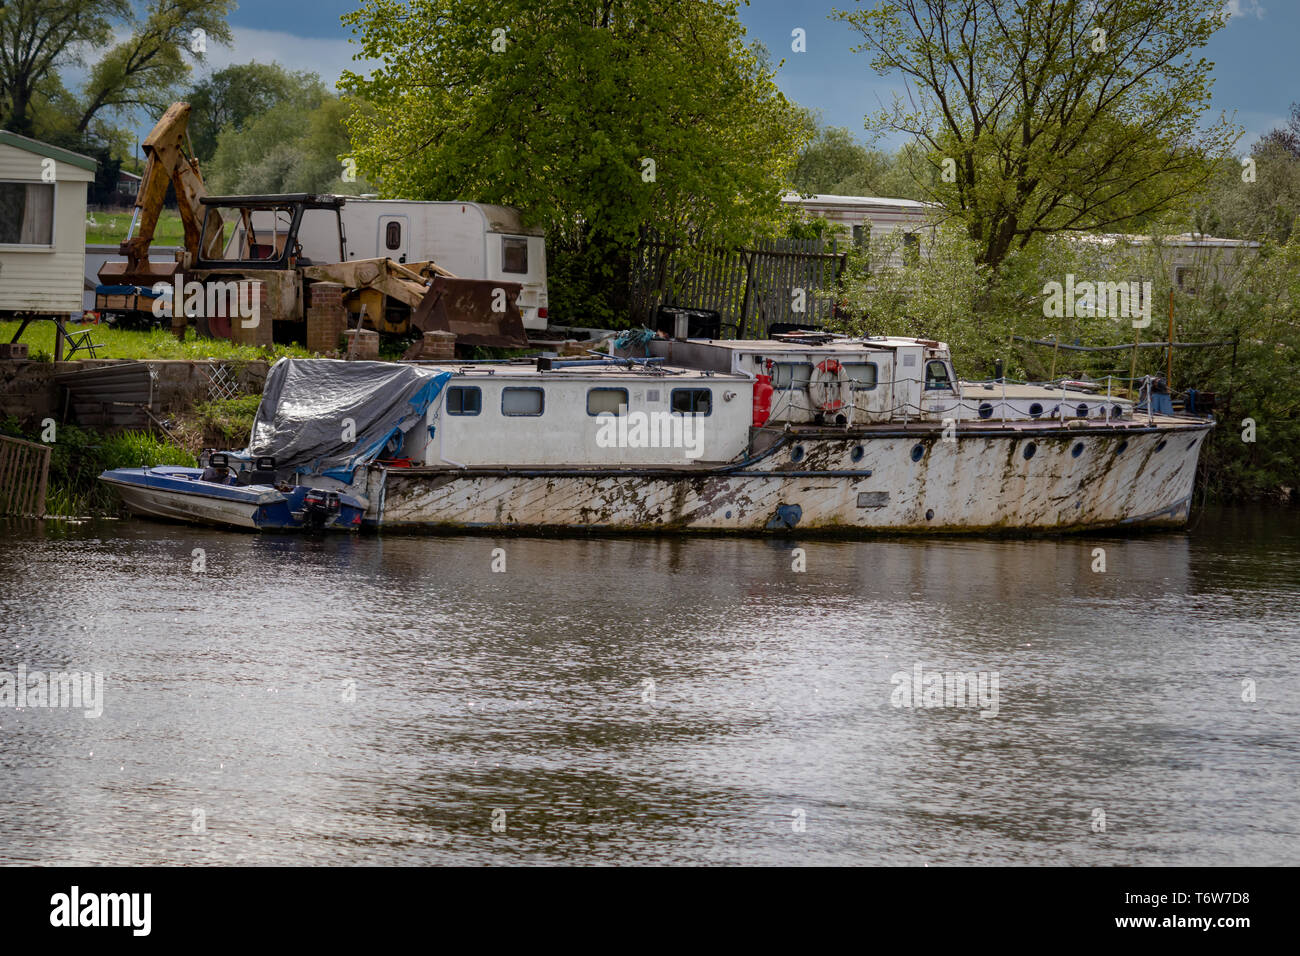 Old Wooden Run Down Vintage House Boat/Cruiser Moored on the River Trent in Nottinghamshire.England Stock Photo